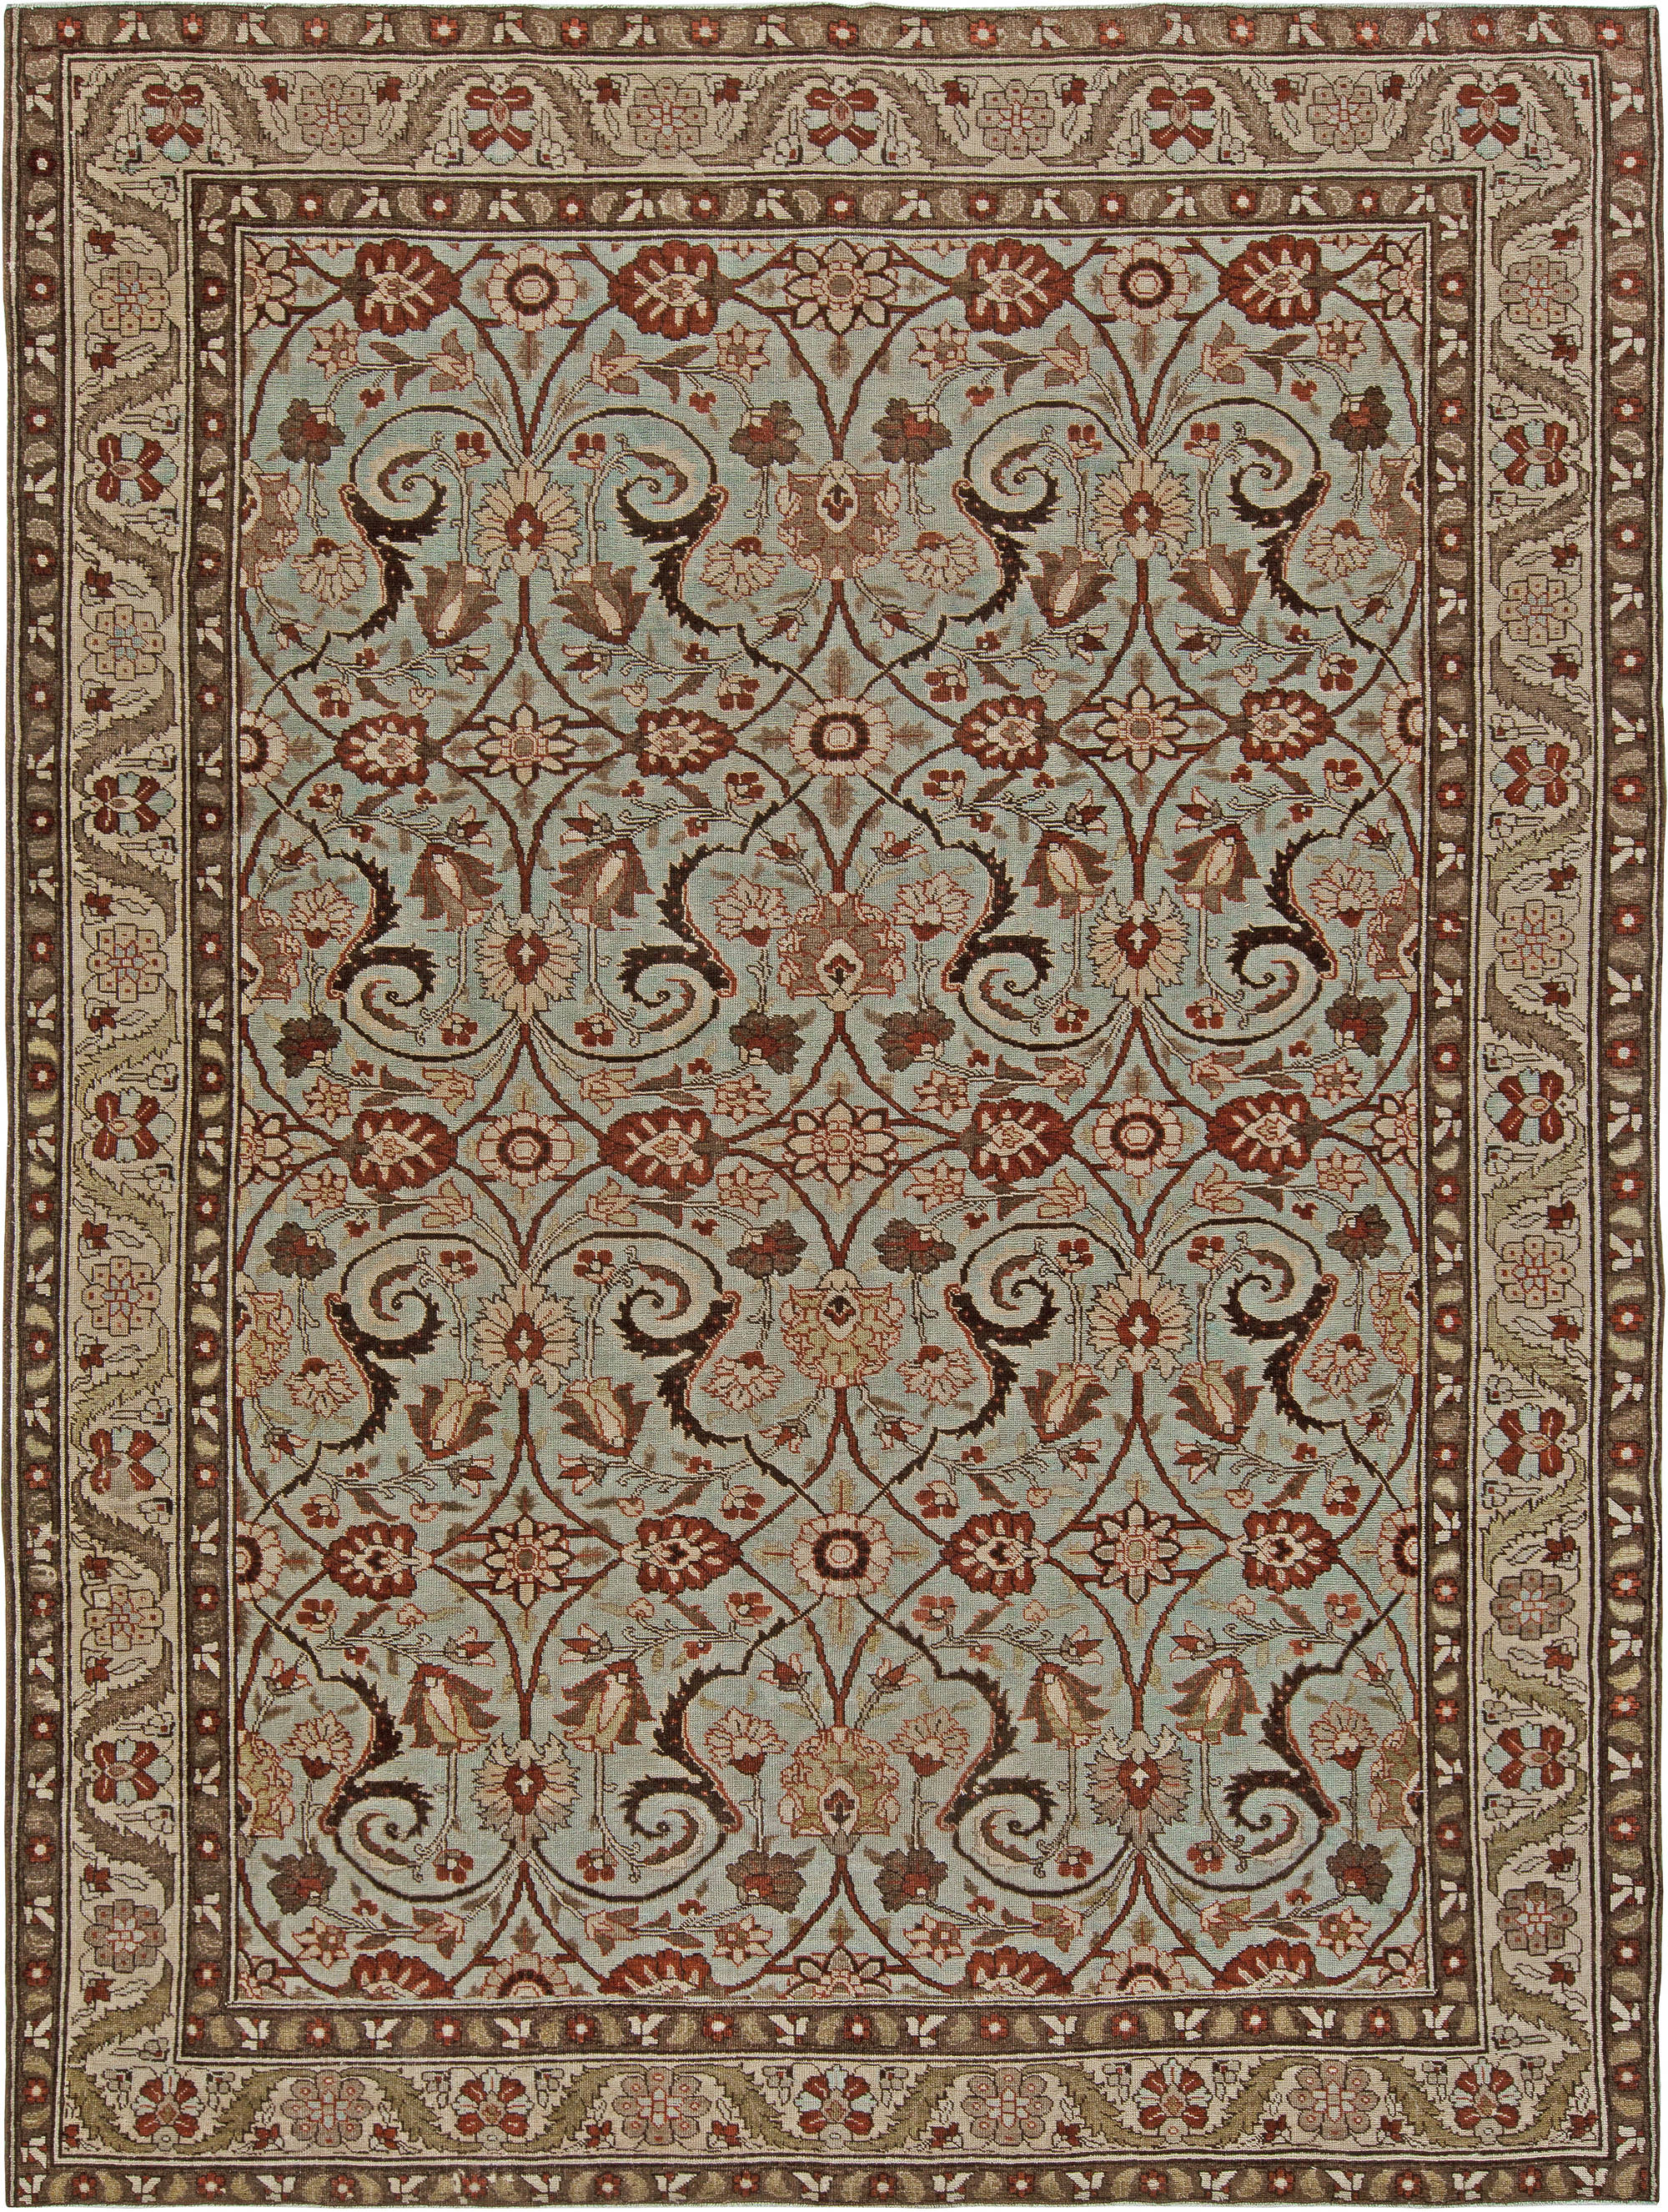 Antique Persian Rugs Antique Oriental Rugs And Carpets